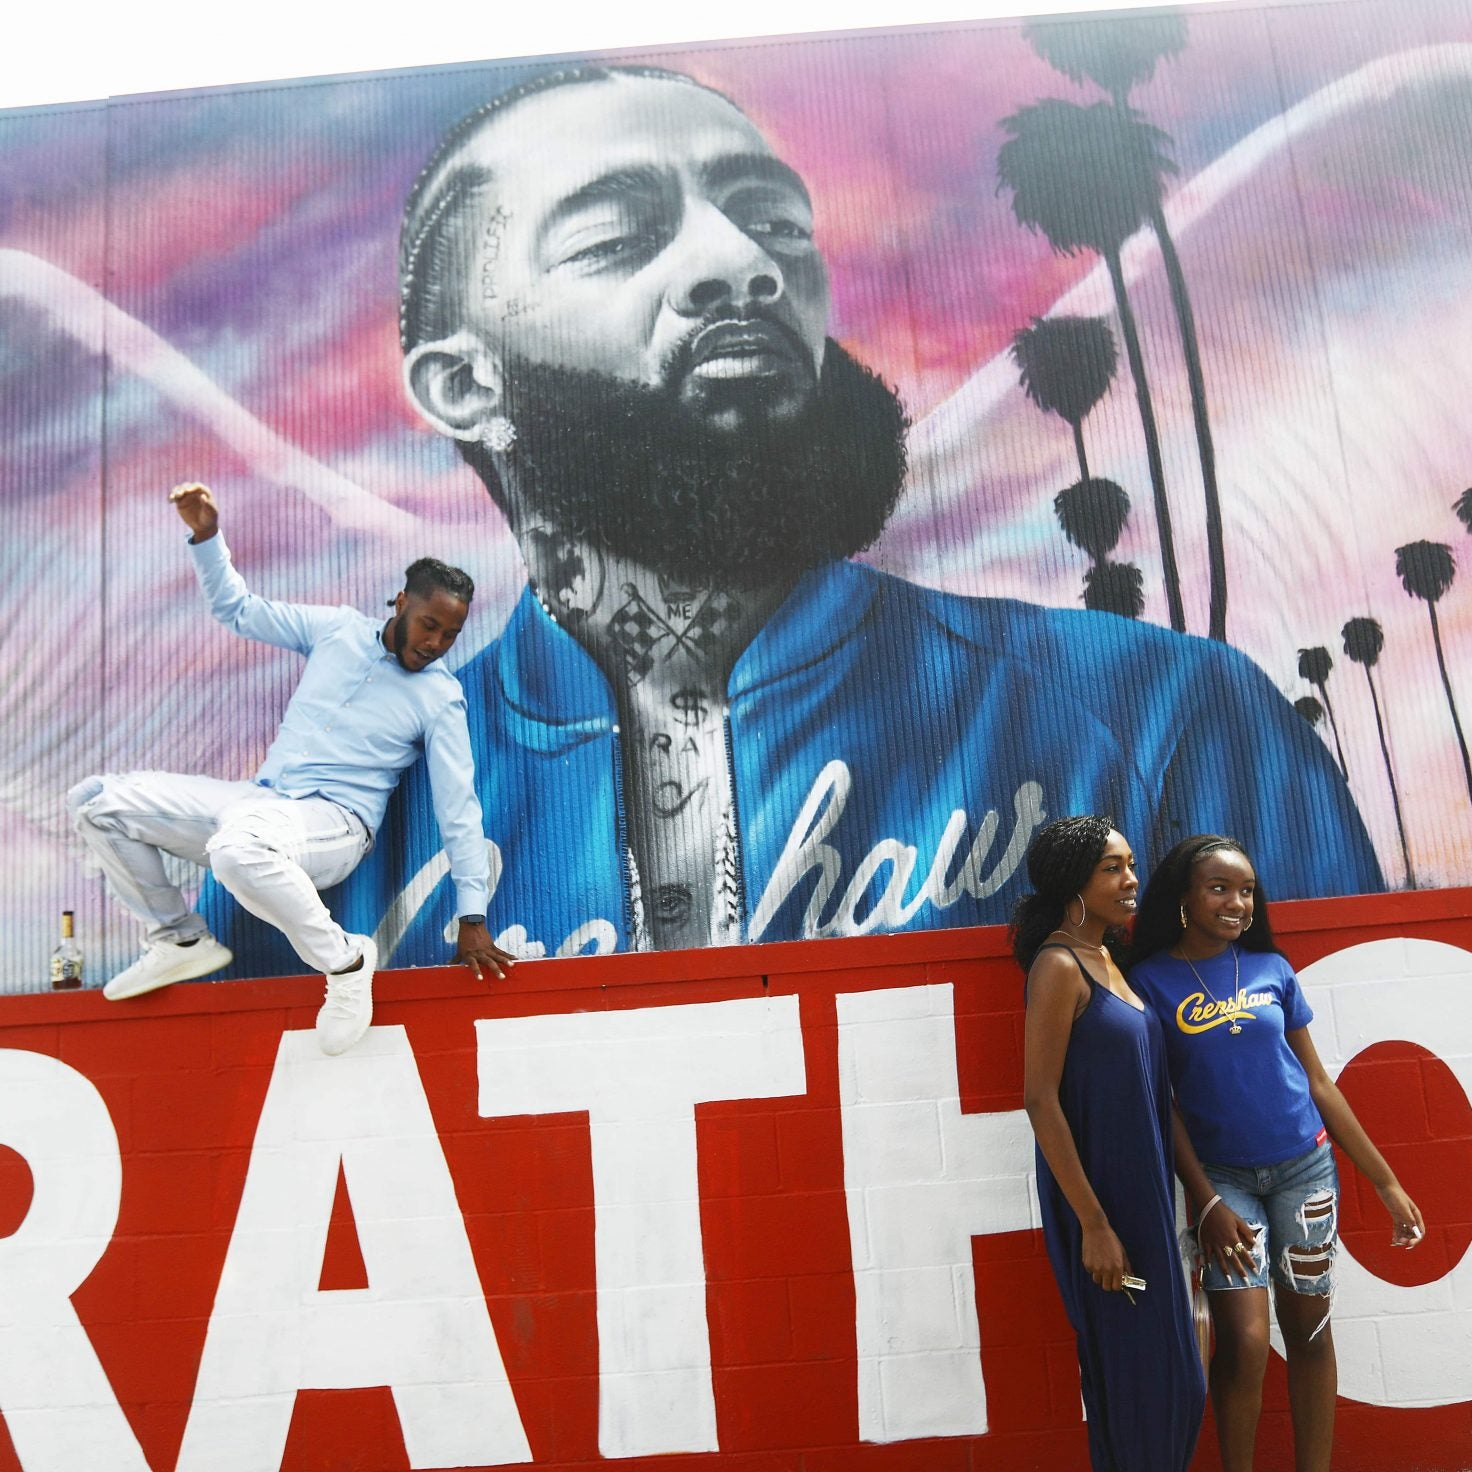 Inside Nipsey Hussle's Memorial Service, A Salute Fit For A King